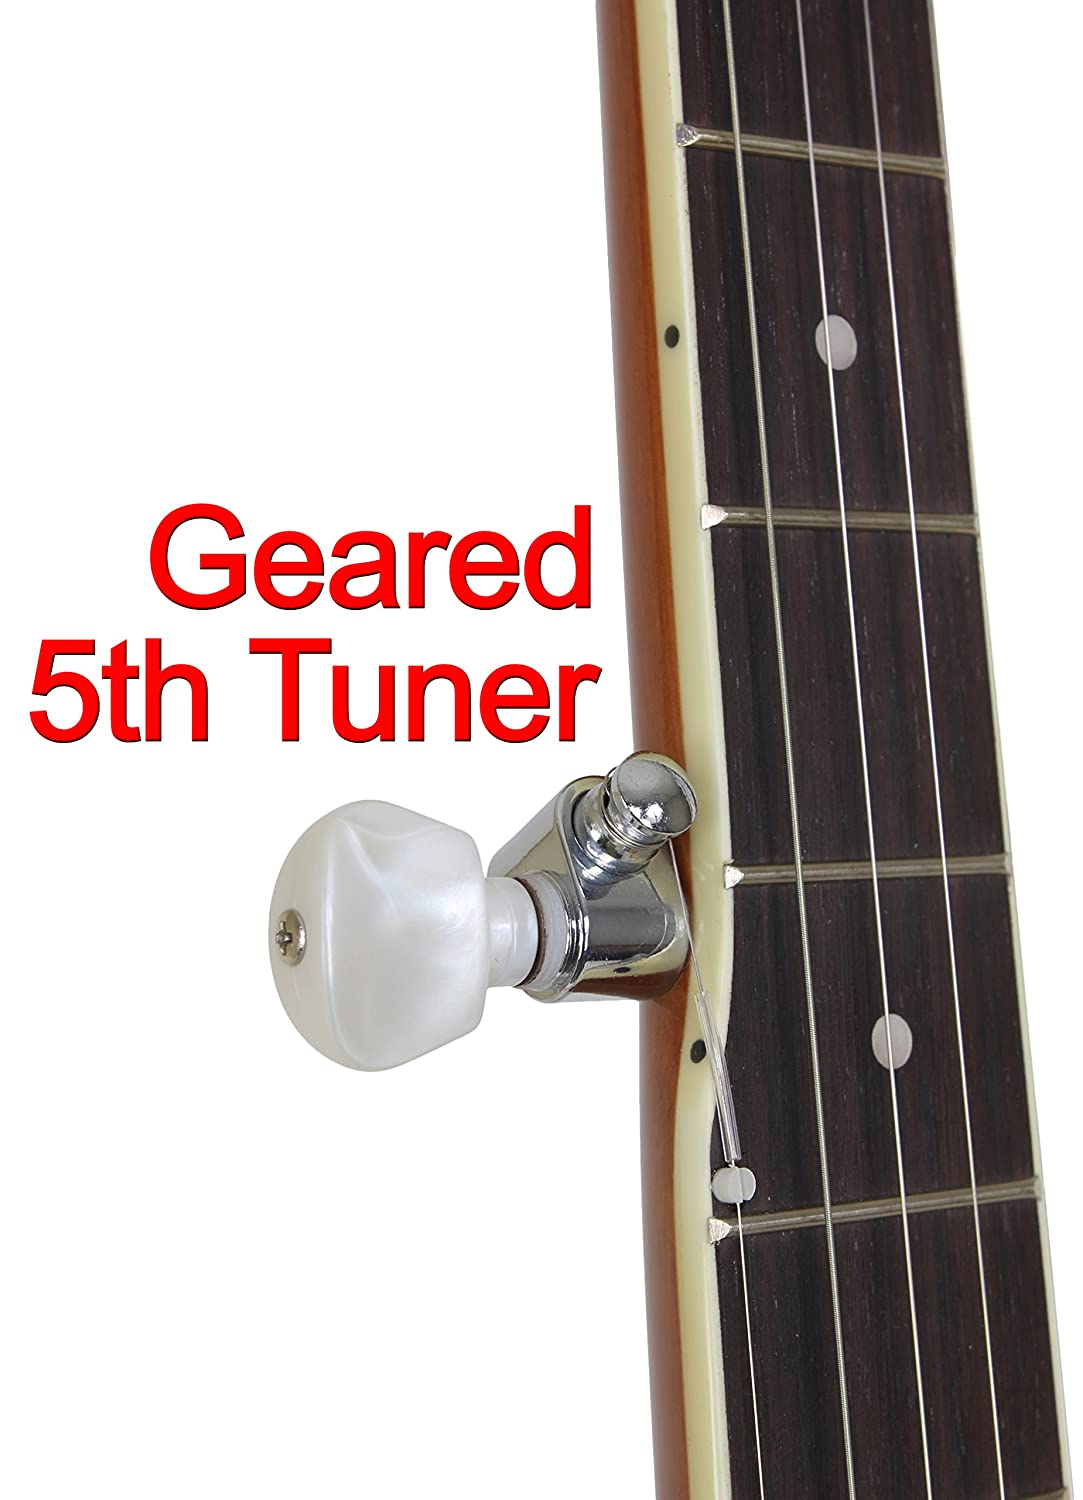 Geared 5th Tuner Detail